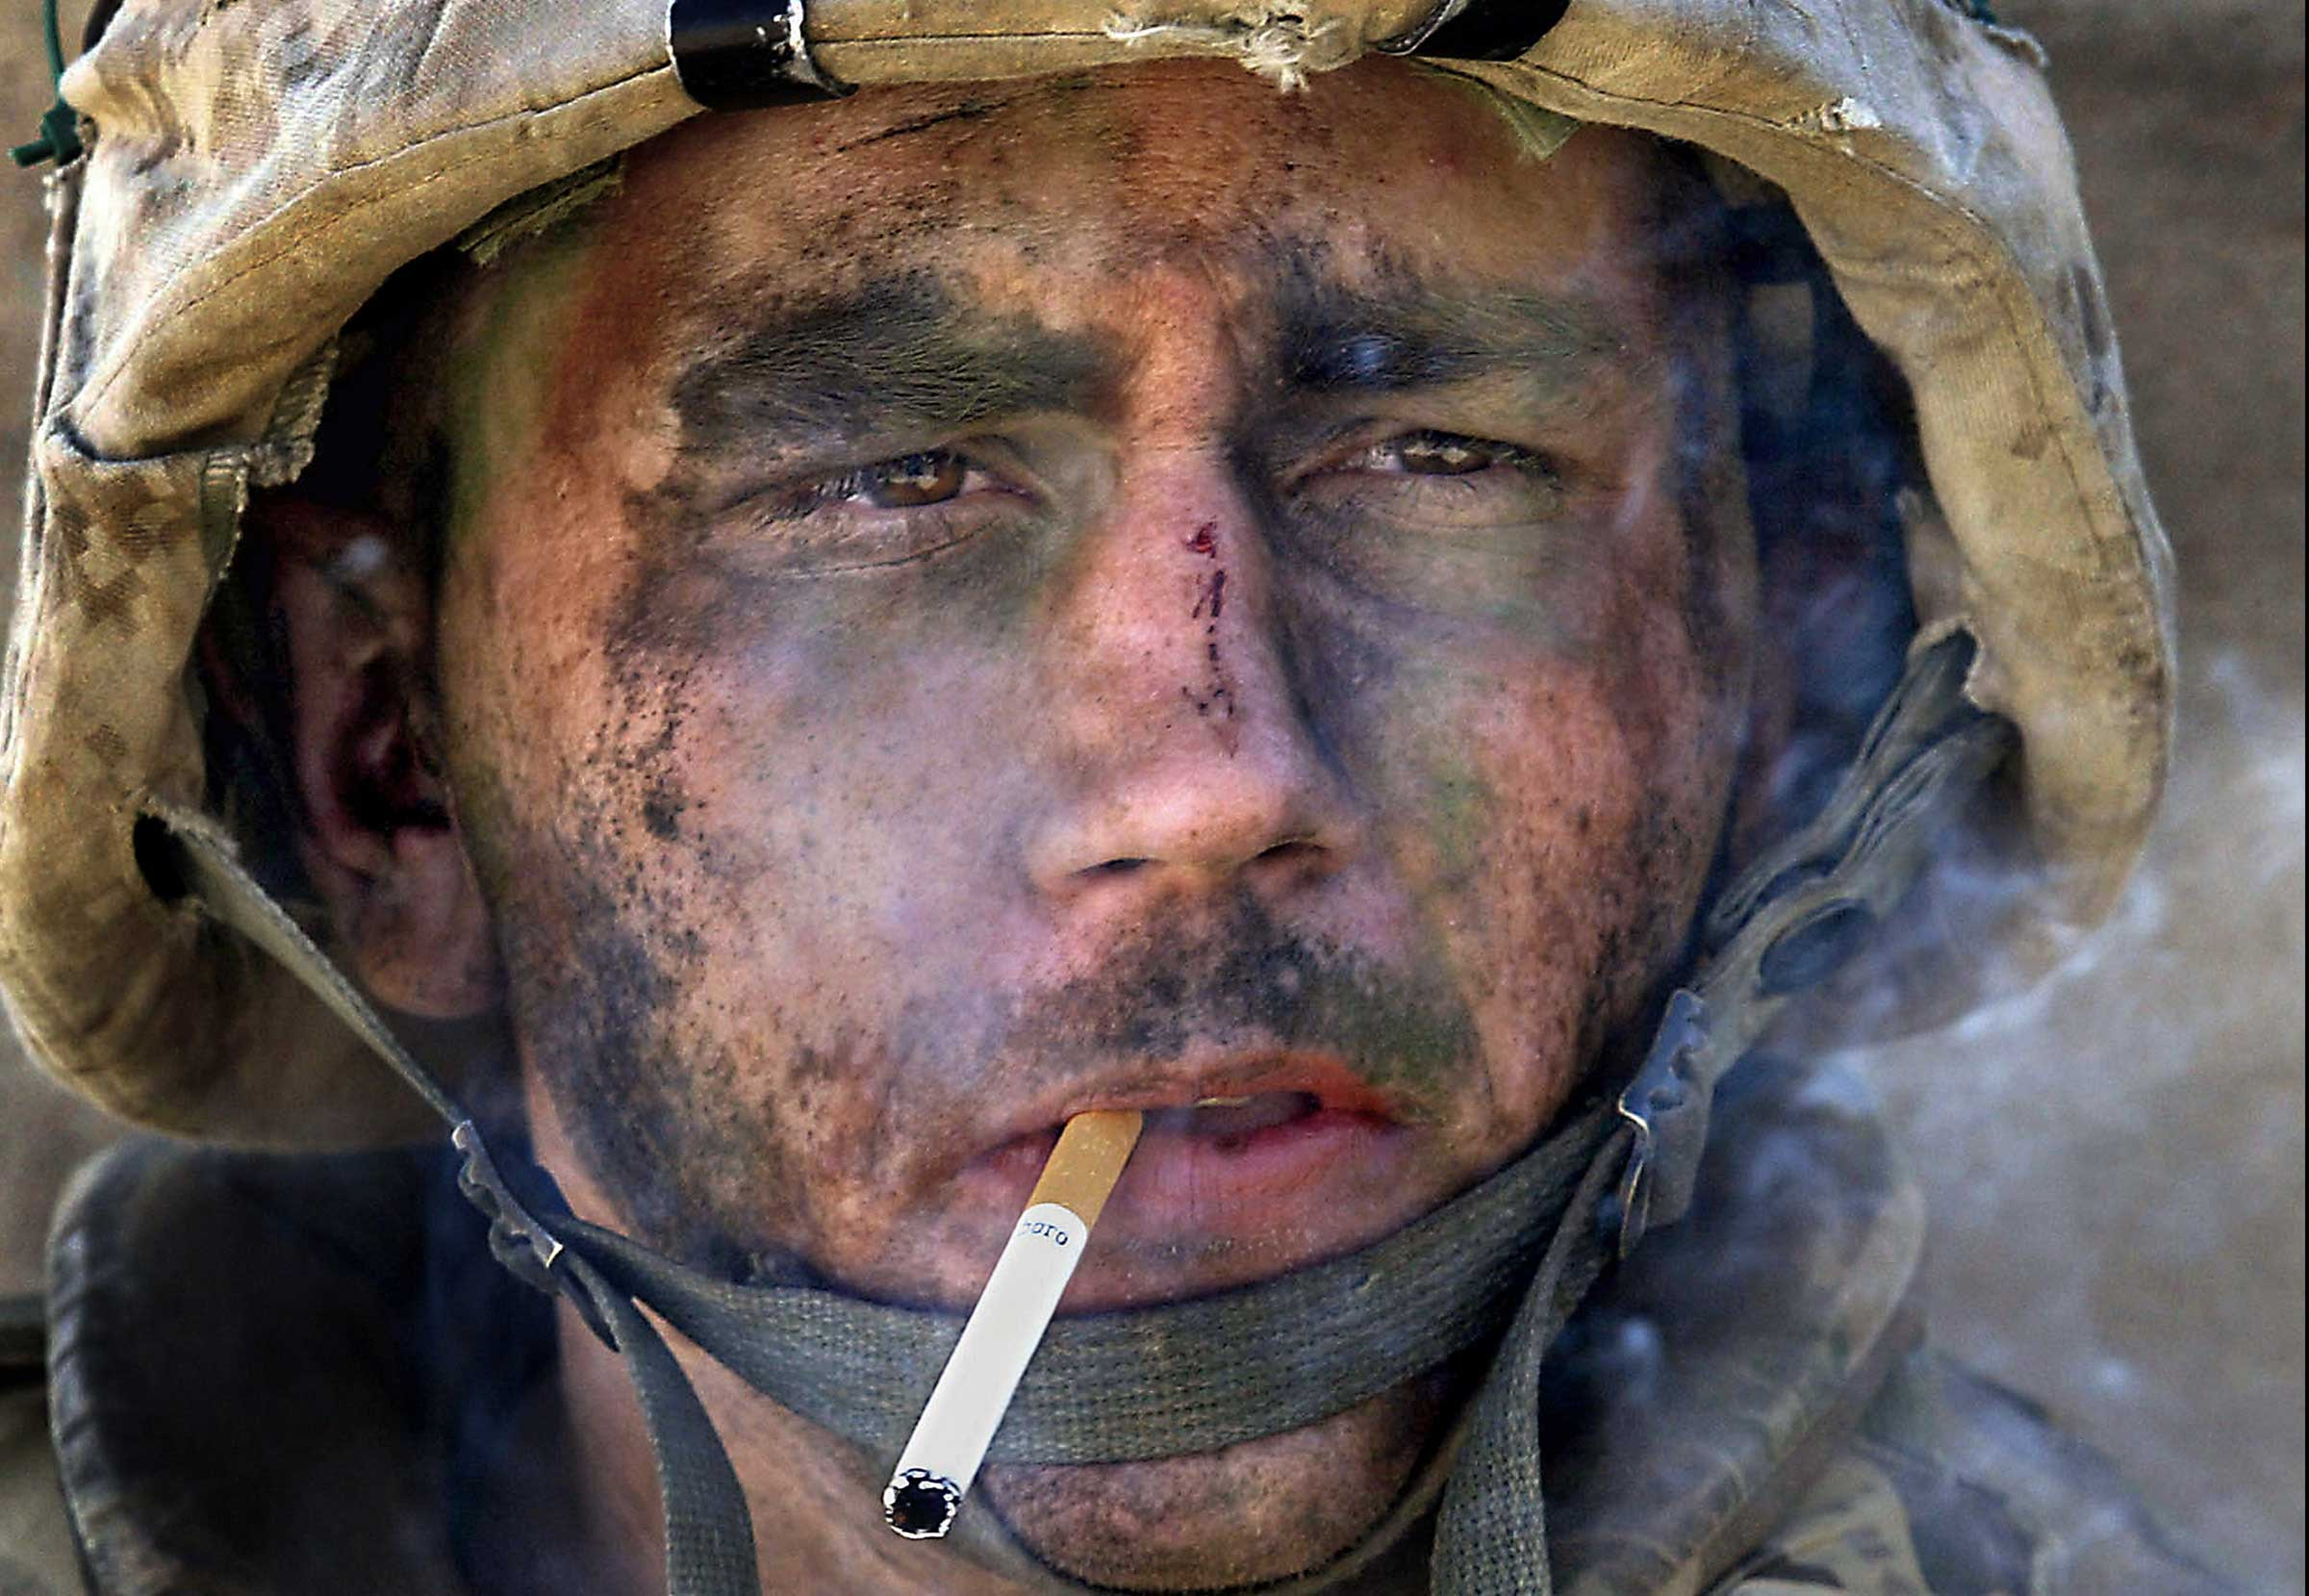 """<b>Luis Sinco, Nov. 2004                                   </b>                                   Marine Lance Corp. James Blake Miller was with the First Marine Battalion, 8th Regiment, during the assault on the insurgent stronghold of Fallujah. His life was forever altered in the crucible of battle. Filthy and exhausted, he lit a cigarette.                                    Arabs have two sayings: """"Insha-Allah"""" (God Willing) and """"Maktub"""" (It Is Written). Someday, somewhere in between, we may find truth."""